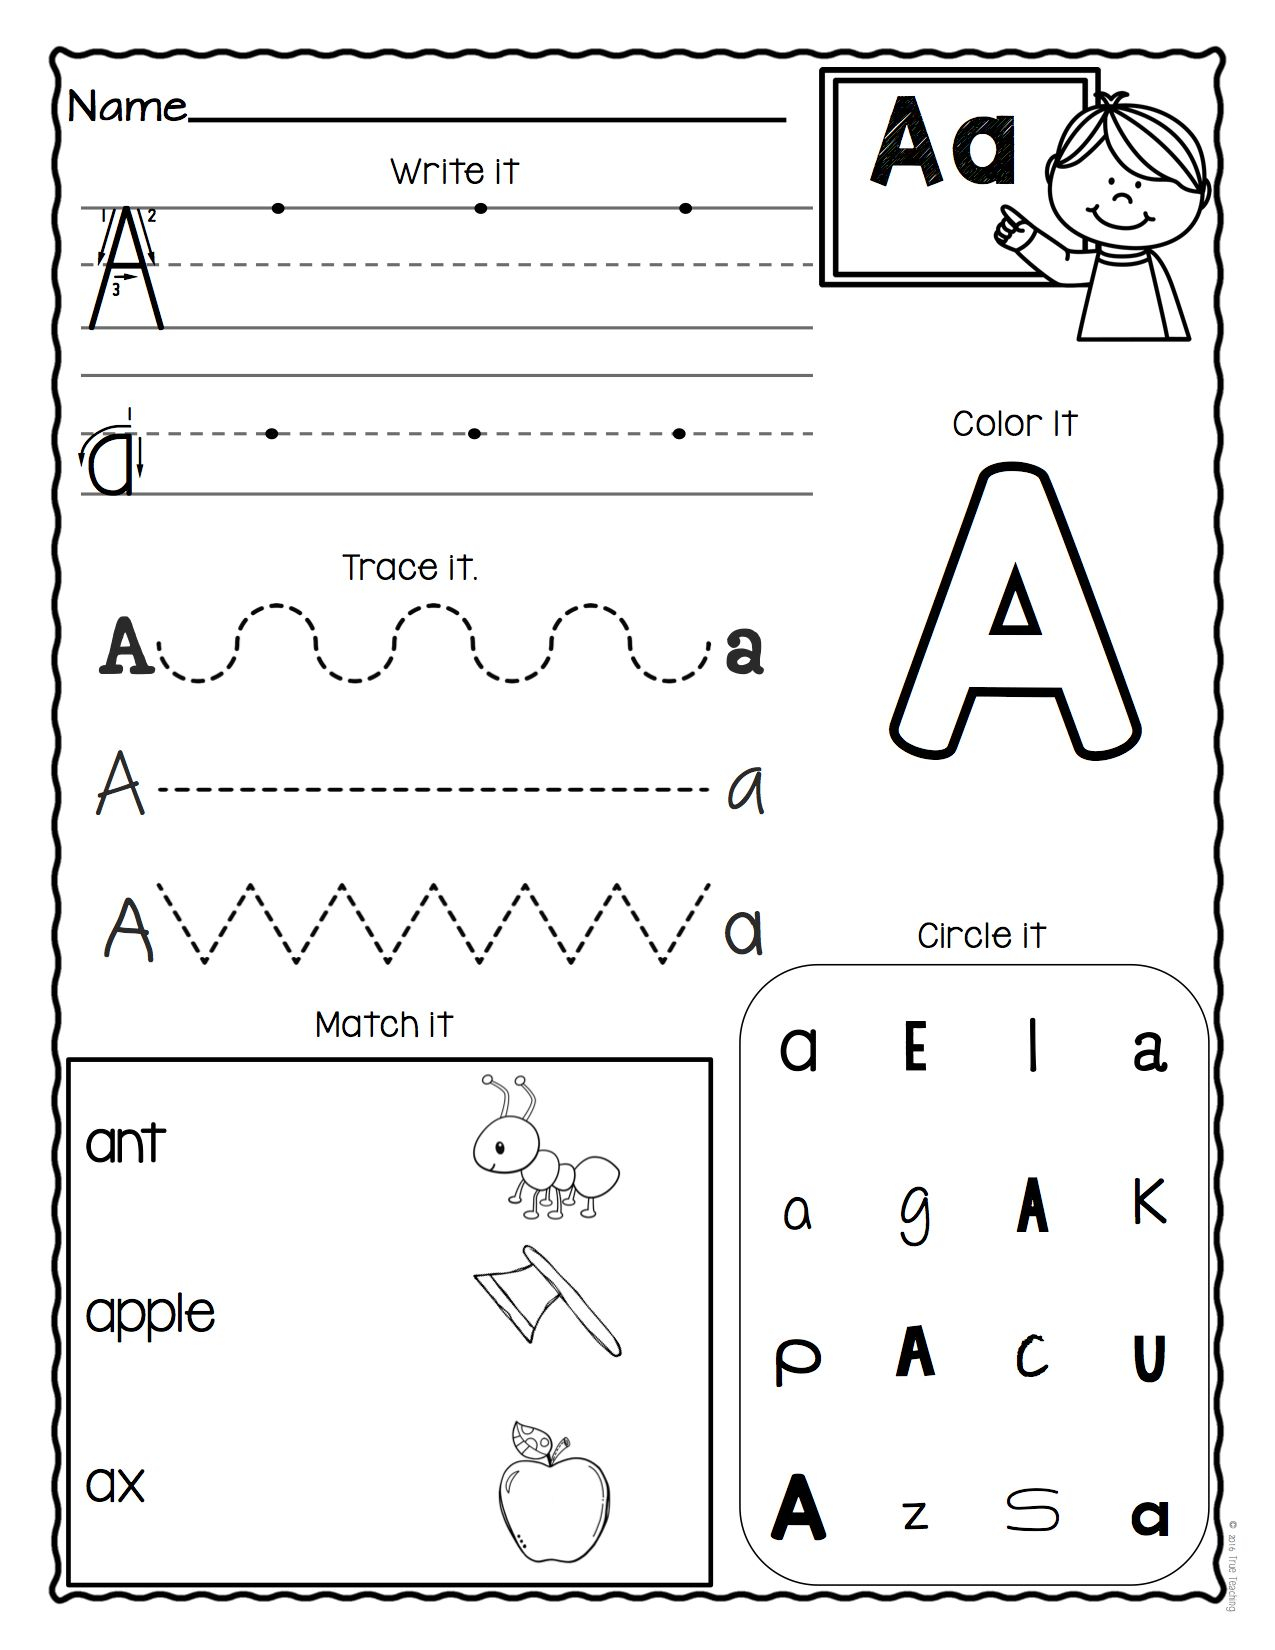 A-Z Letter Worksheets (Set 3) | Alphabet Worksheets pertaining to Alphabet Worksheets Letter A